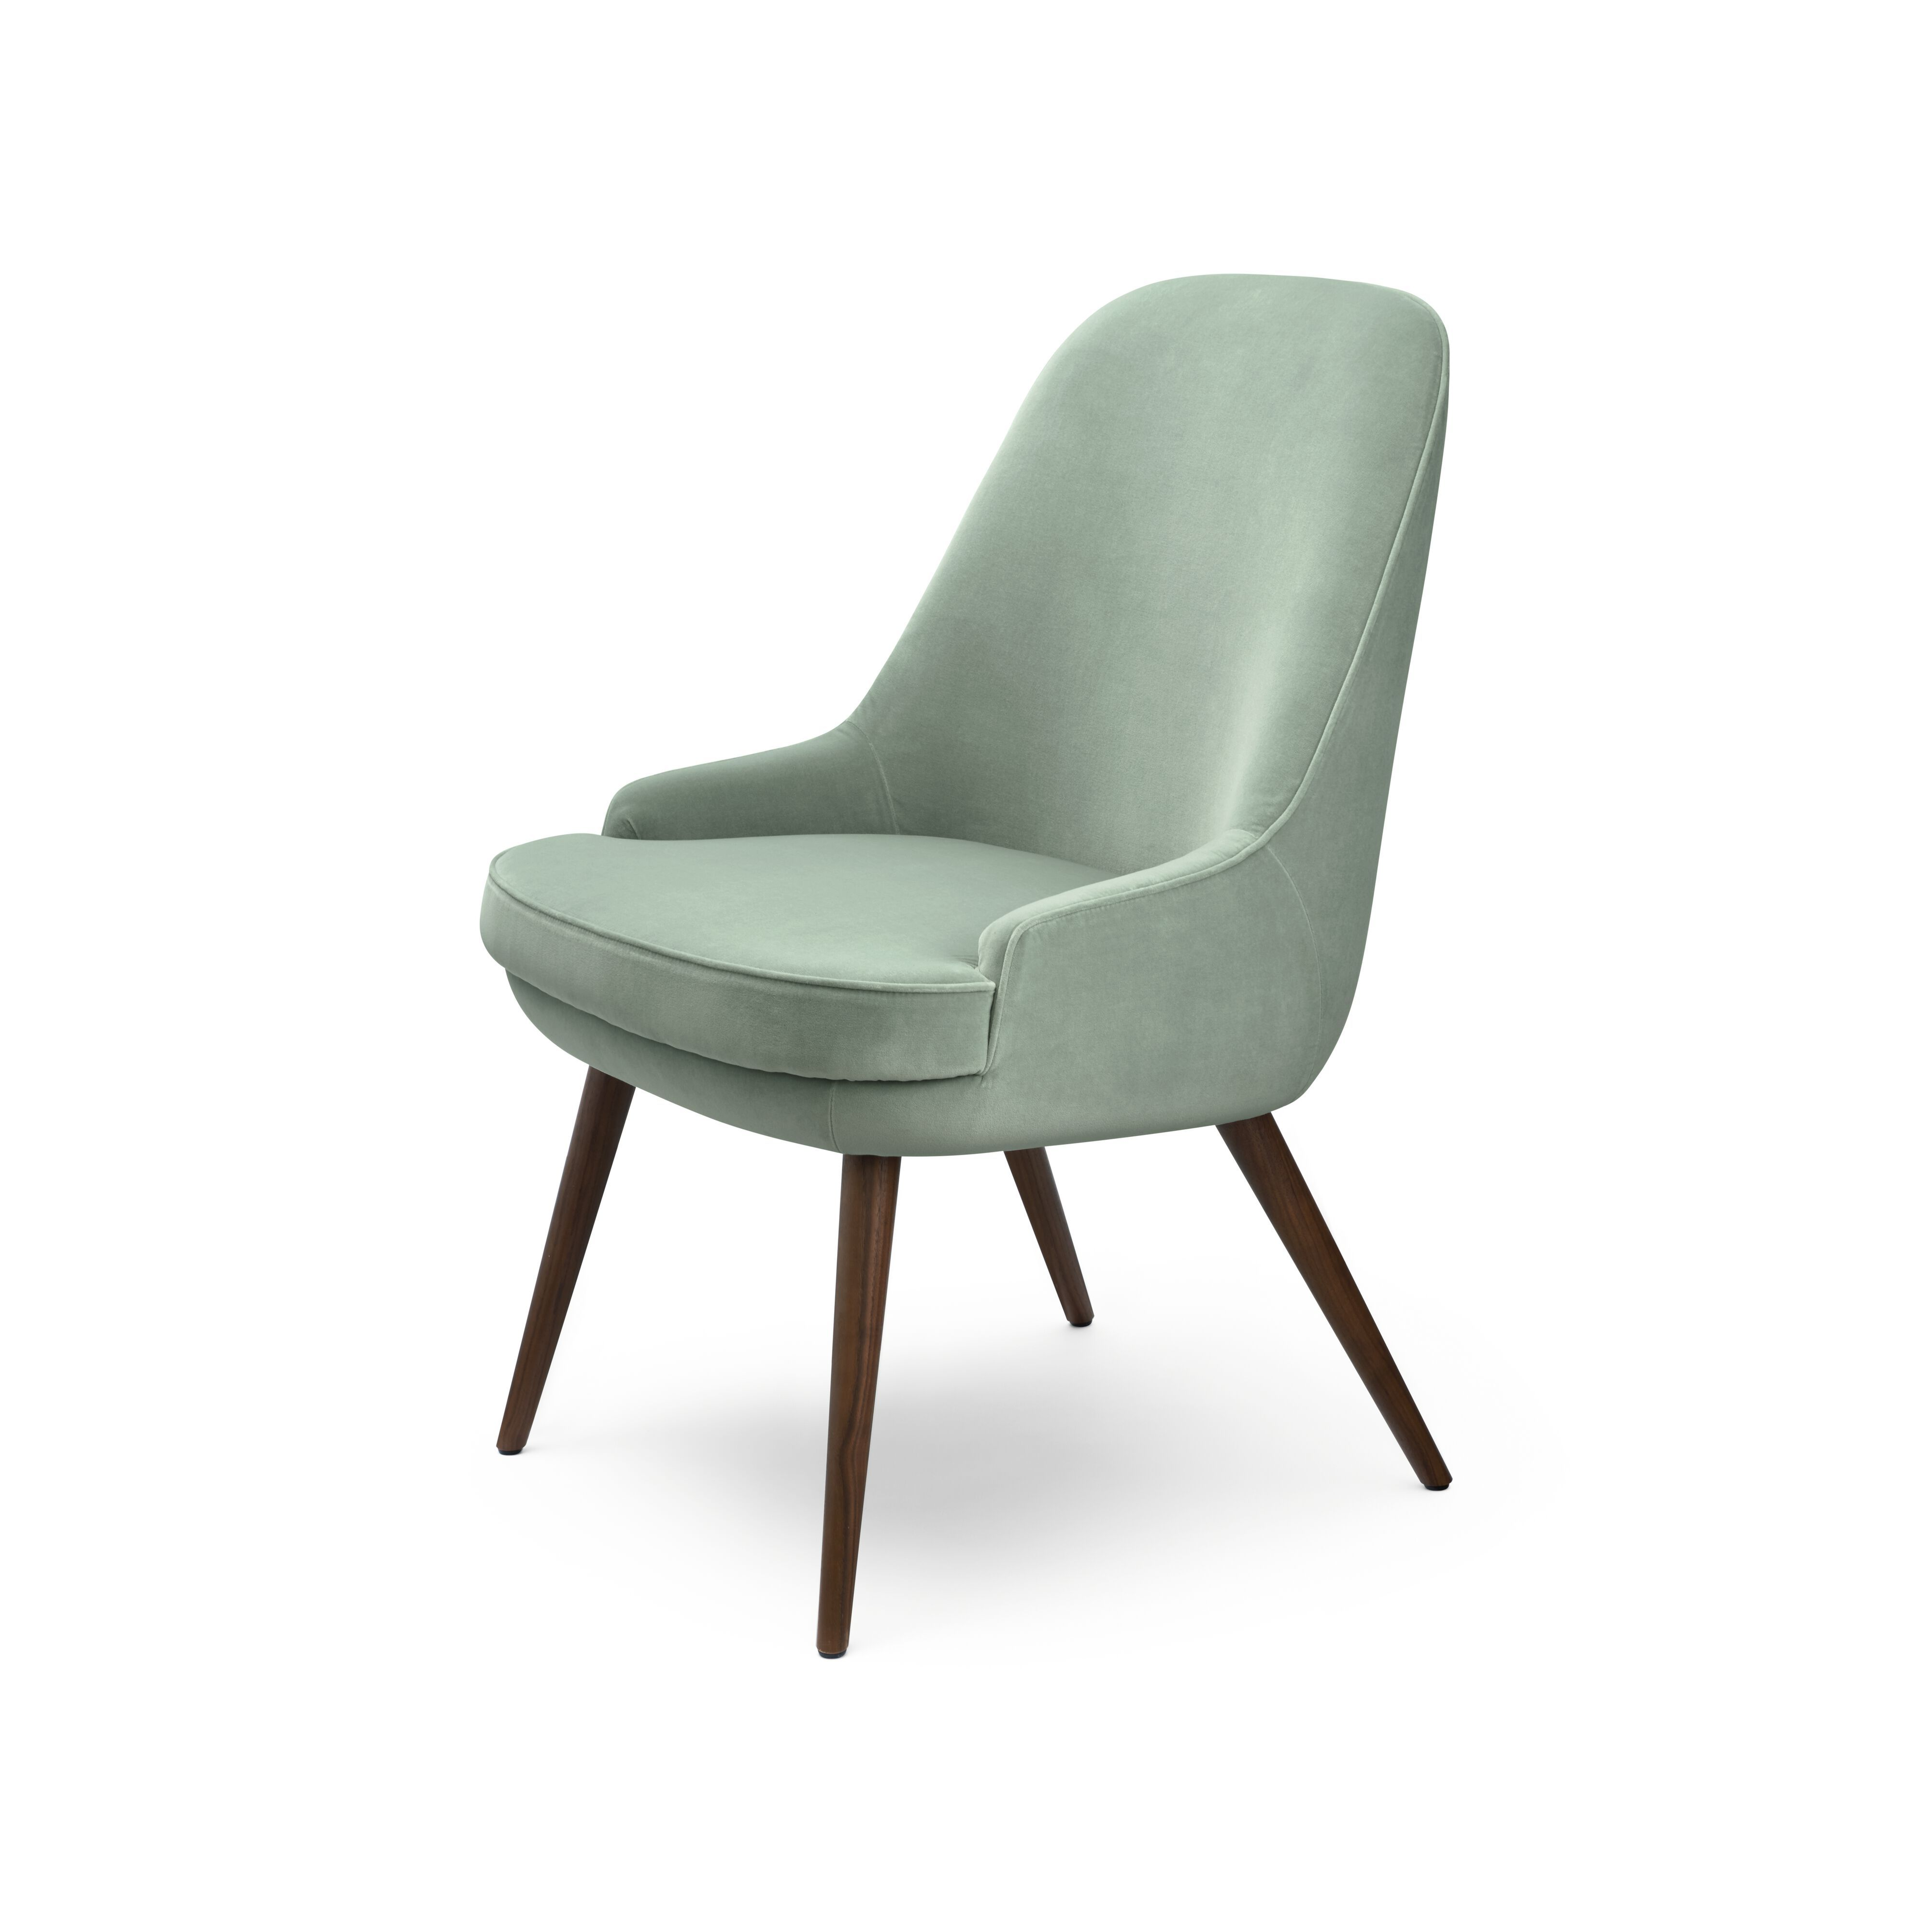 07_WK-375_Chair-Modell-1375-Dining-Chair-0004-H.tif